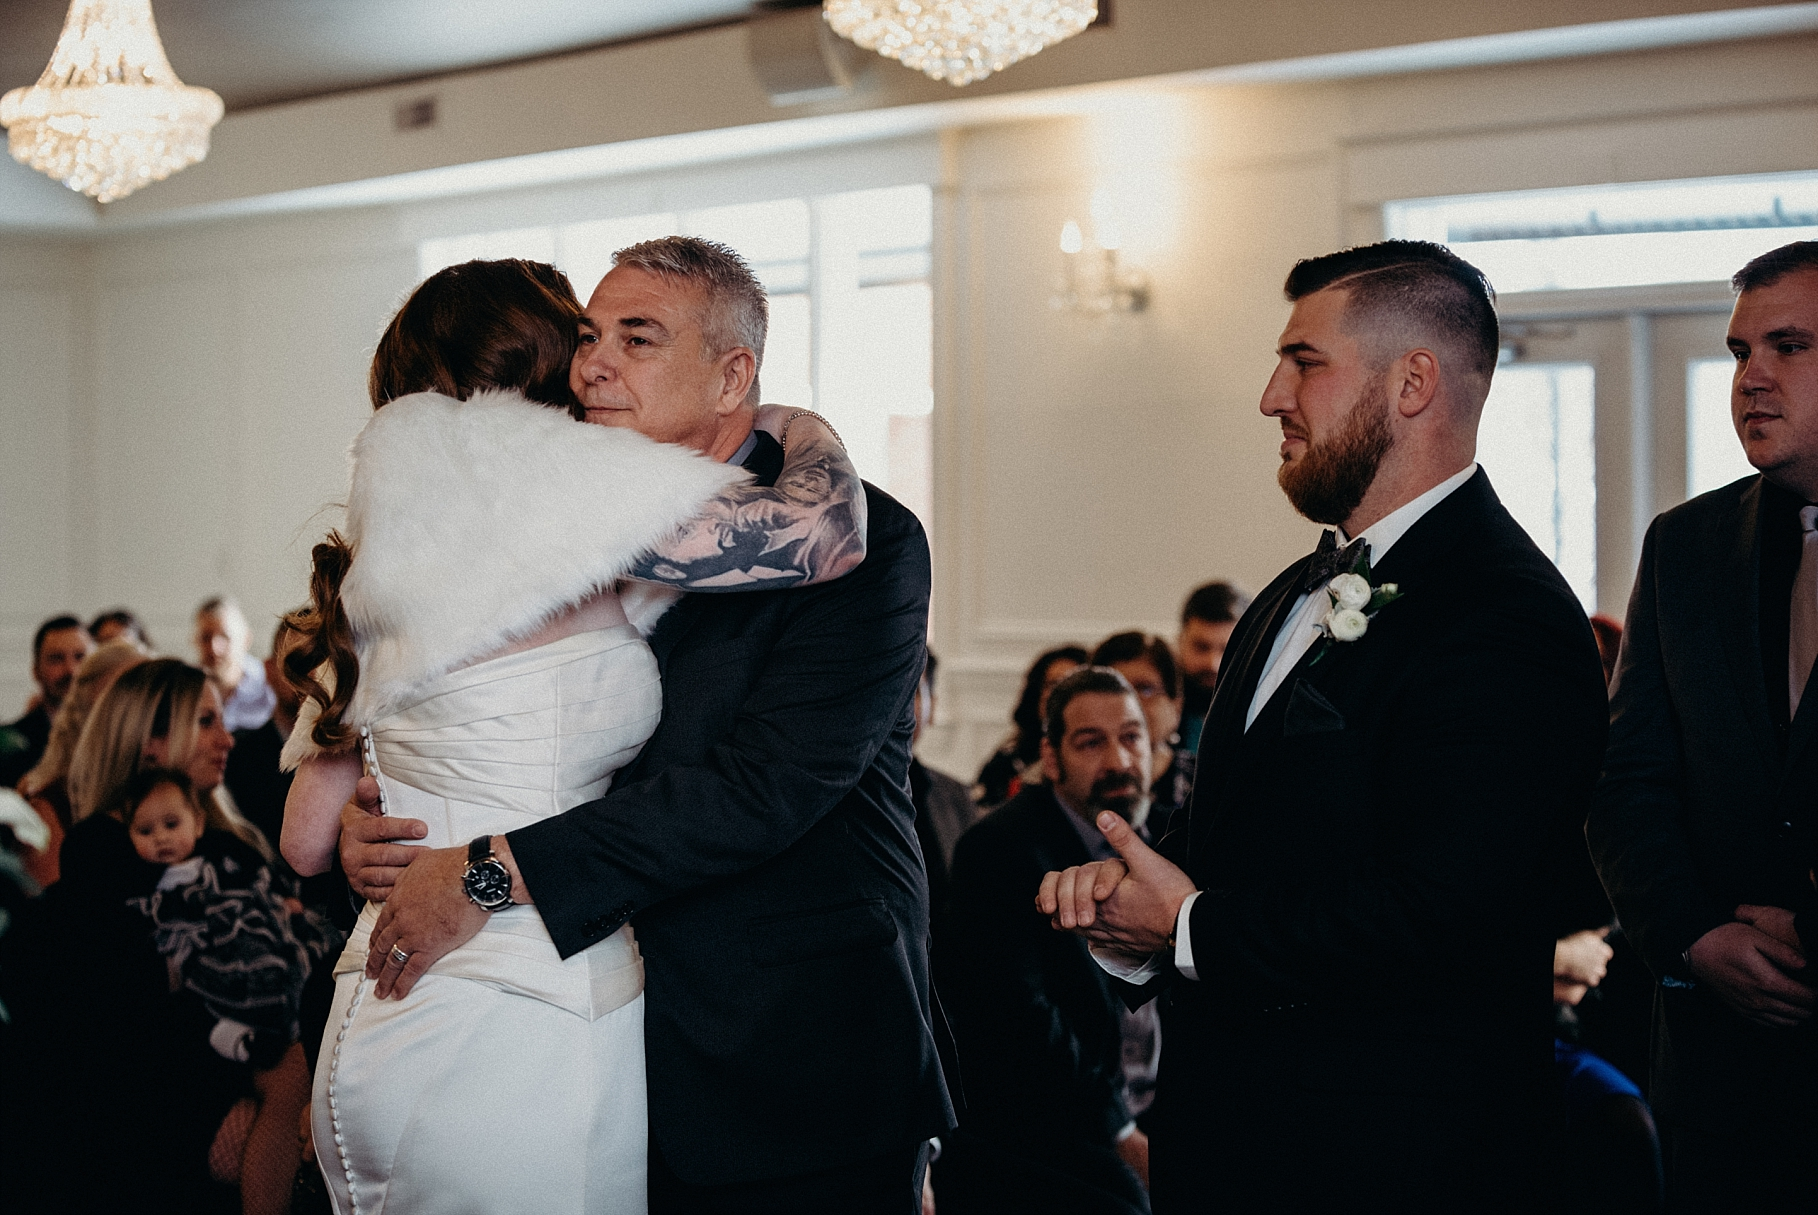 Orchard View Wedding by Mocha Tree Studios Ottawa Wedding and Engagement Photographer and Videographer Dark Moody Intimate Authentic Modern Romantic Cinematic Best Candid 12